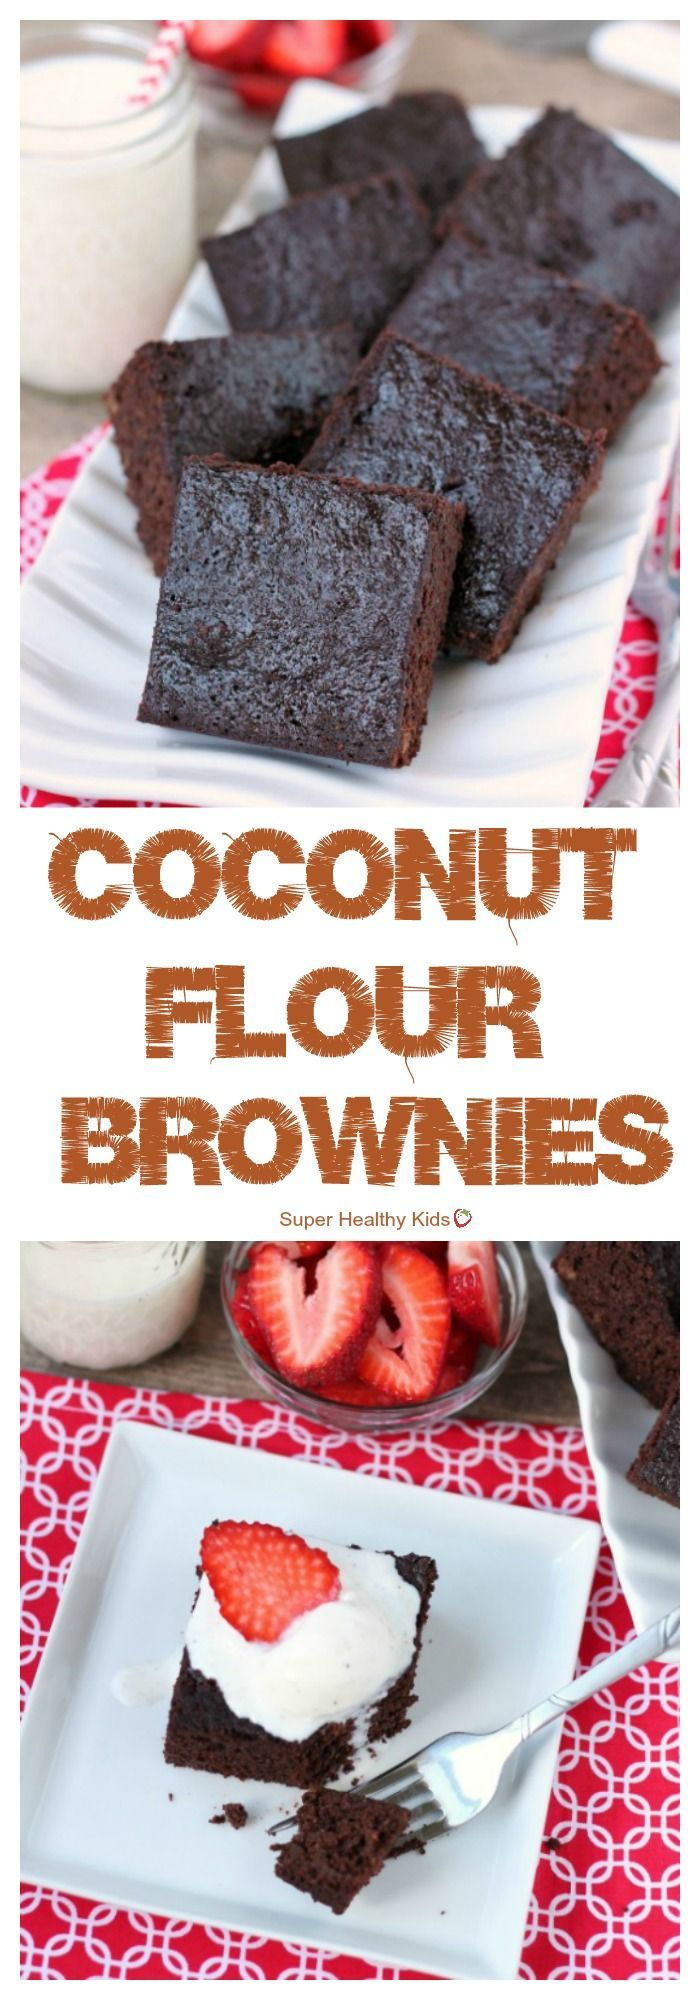 FOOD – Coconut Flour Brownies. Coconut flour makes a deliciously dense and chewy brownie, gluten-free.